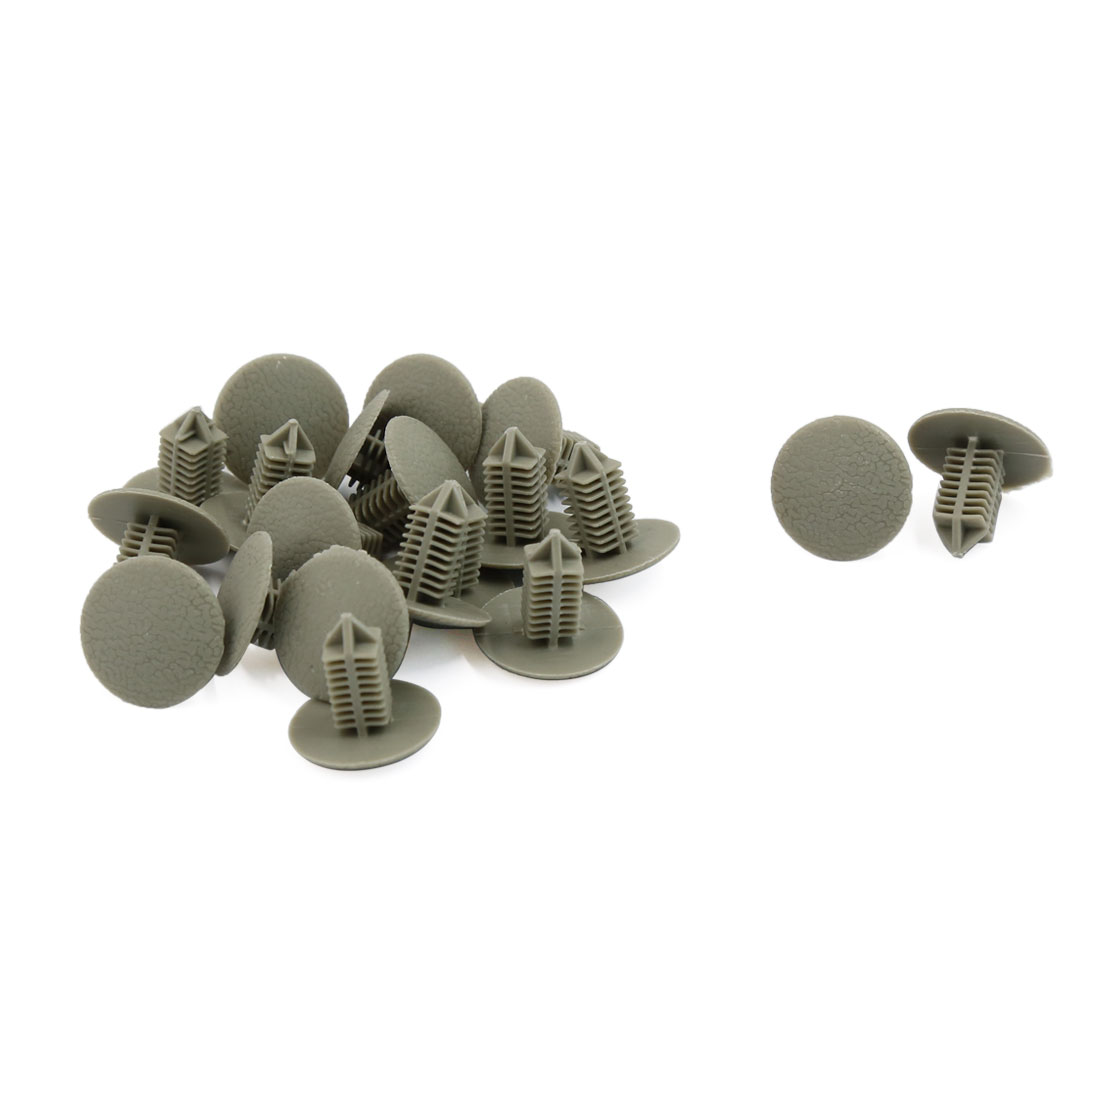 Car 6.5mm Hole Gray Plastic Rivets Bumper Door Fastener Push Clips 20 Pcs